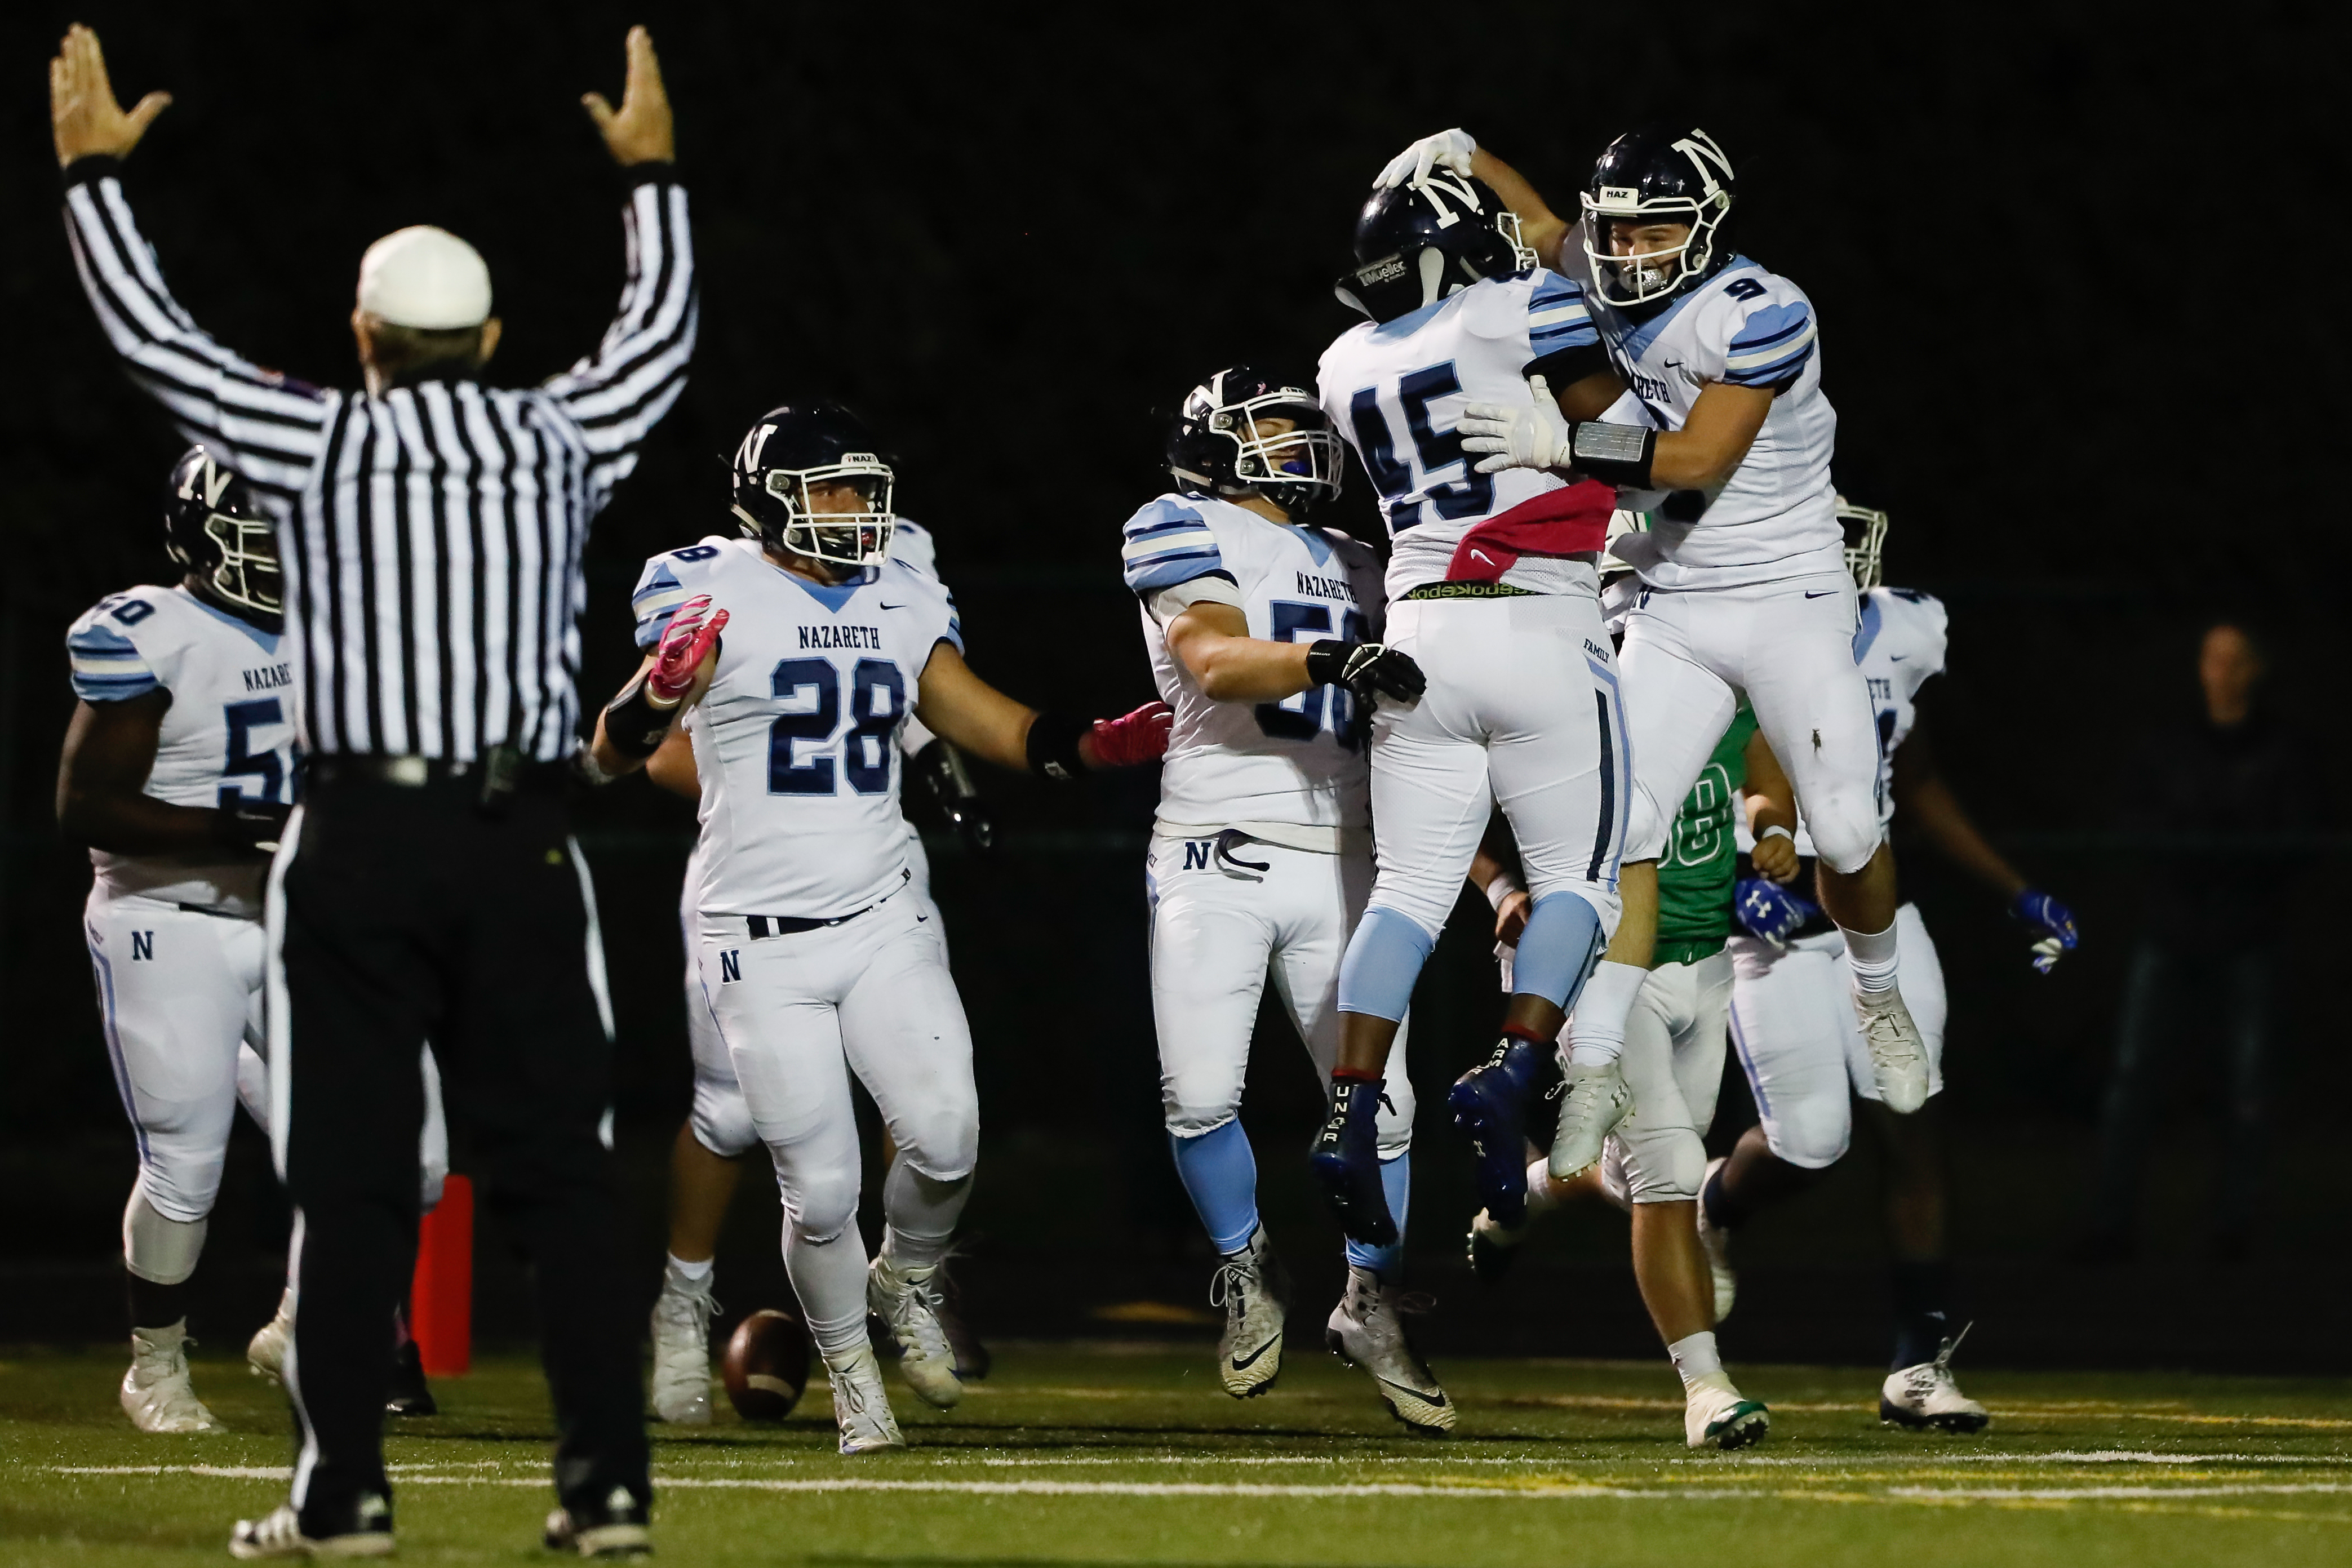 Nazareth's Breven Reifsteck (9) celebrates with his team after scoring a touchdown against Notre Dame.